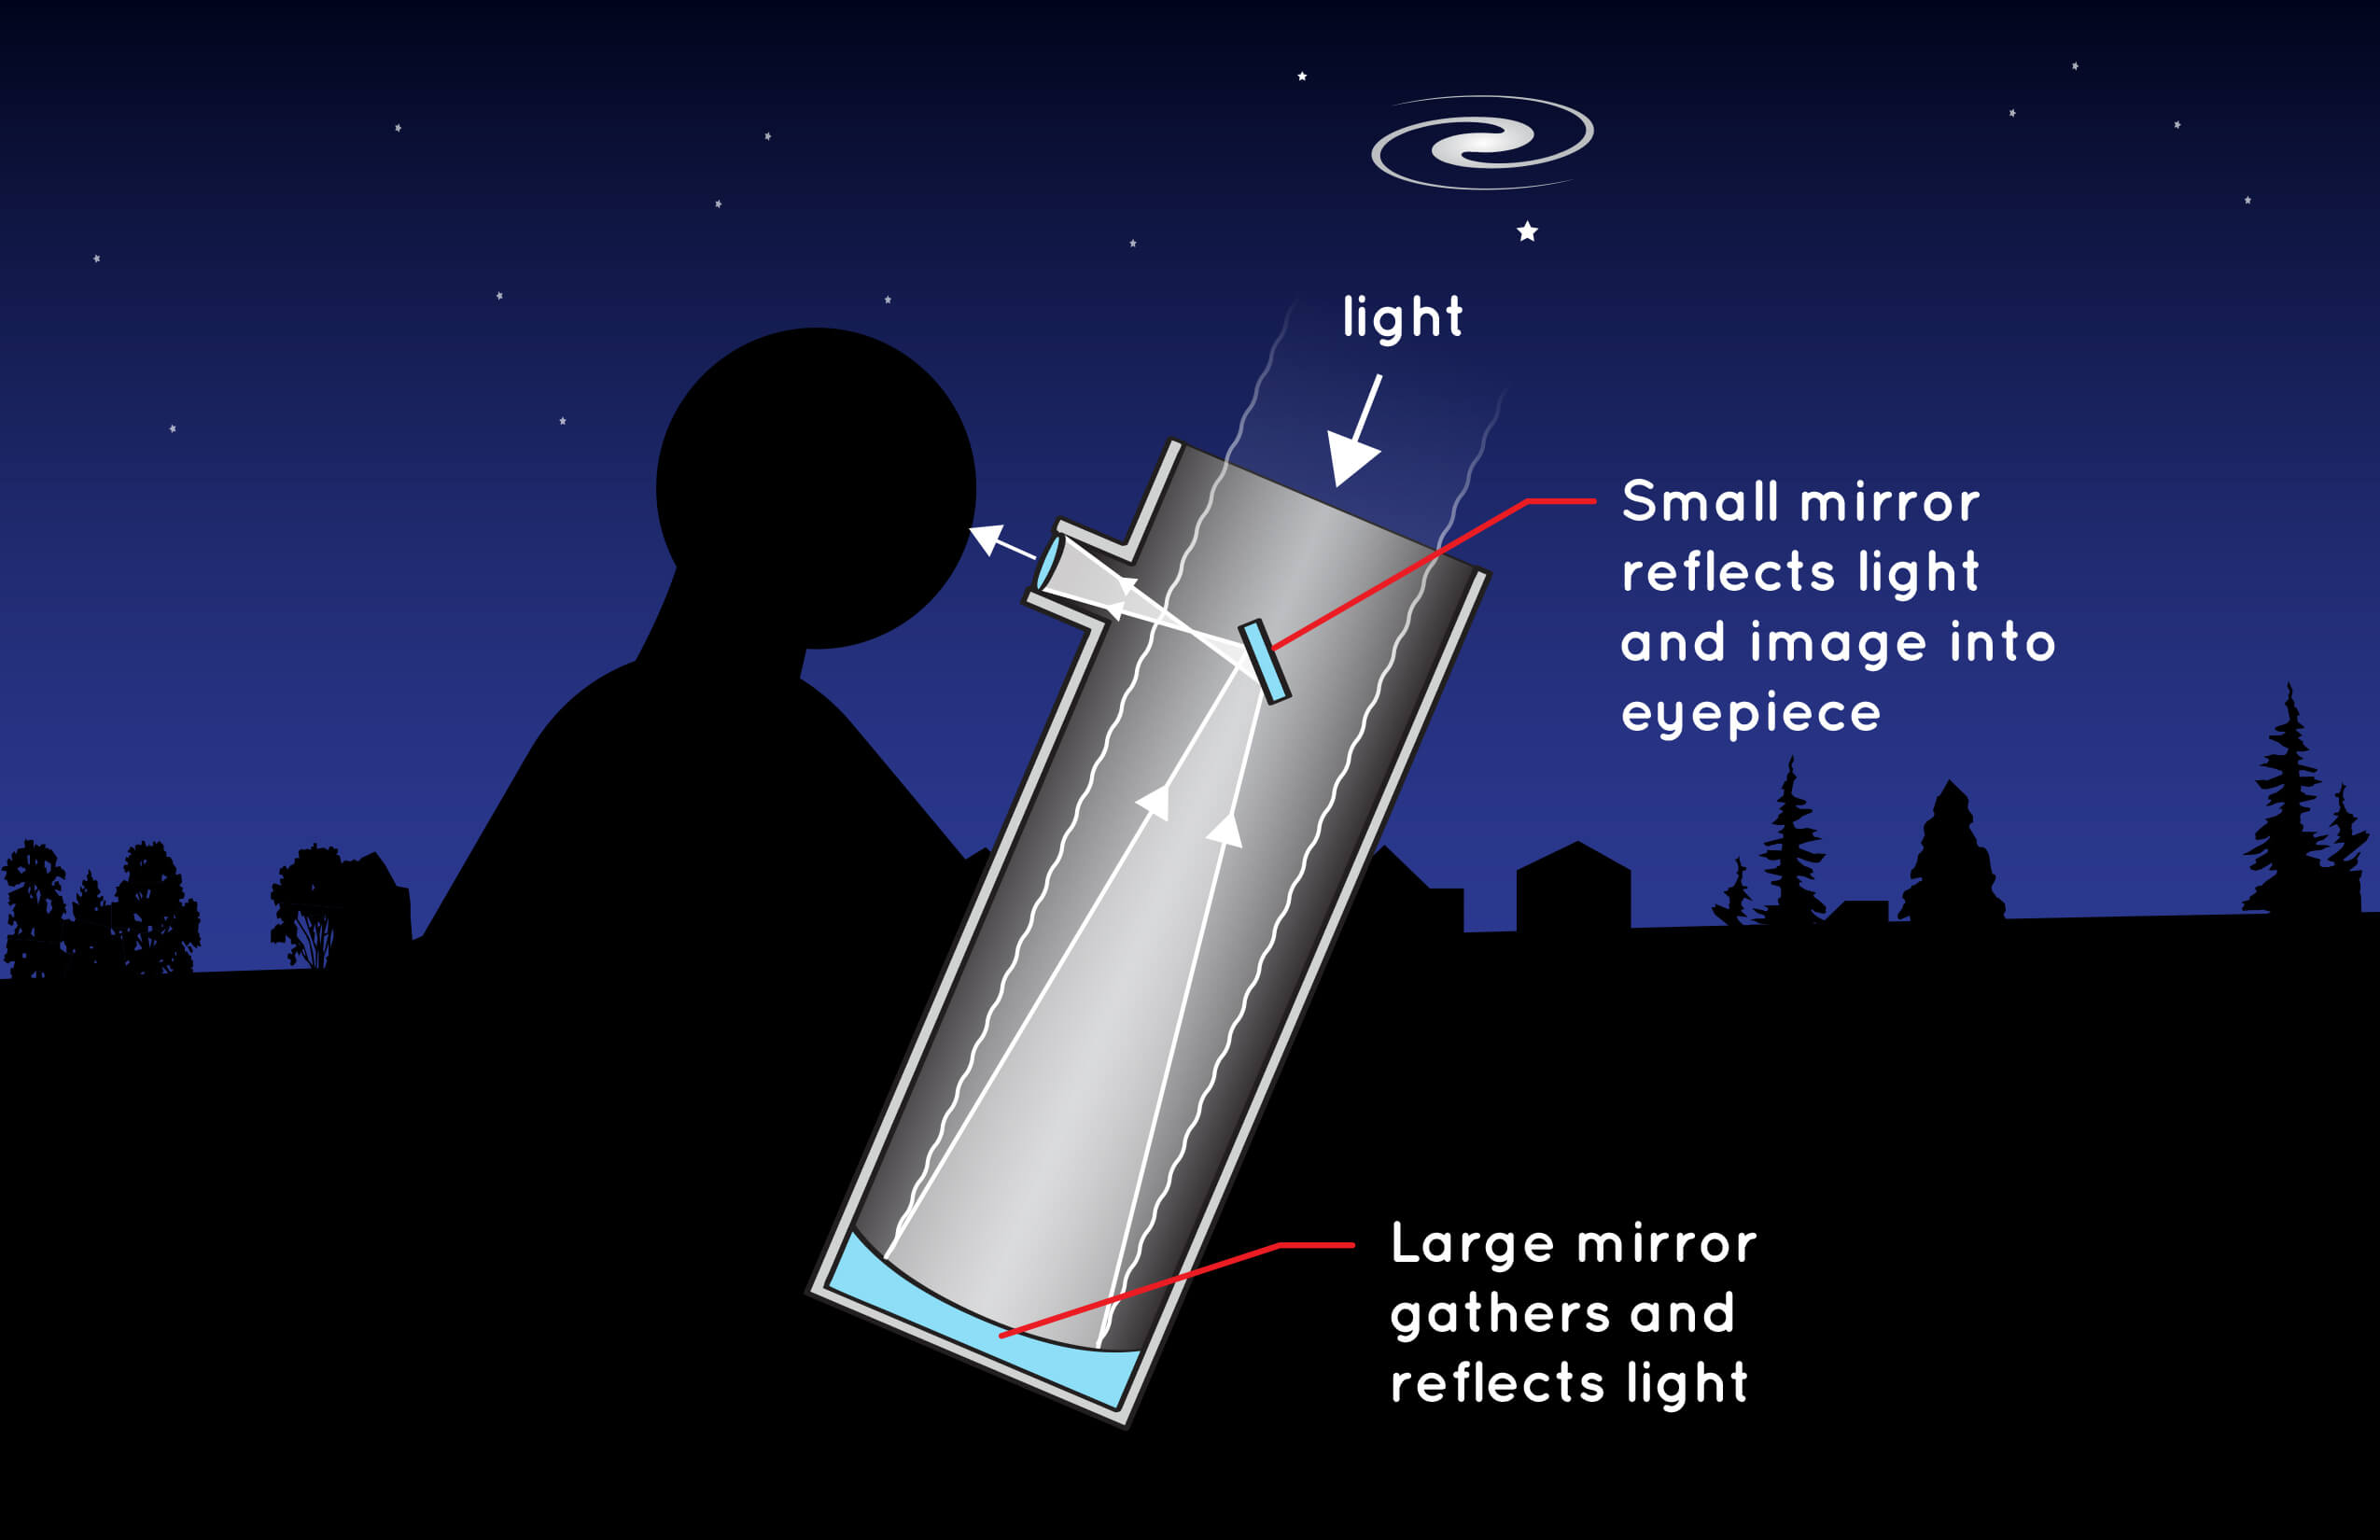 Illustration of a simple reflecting telescope using mirrors.